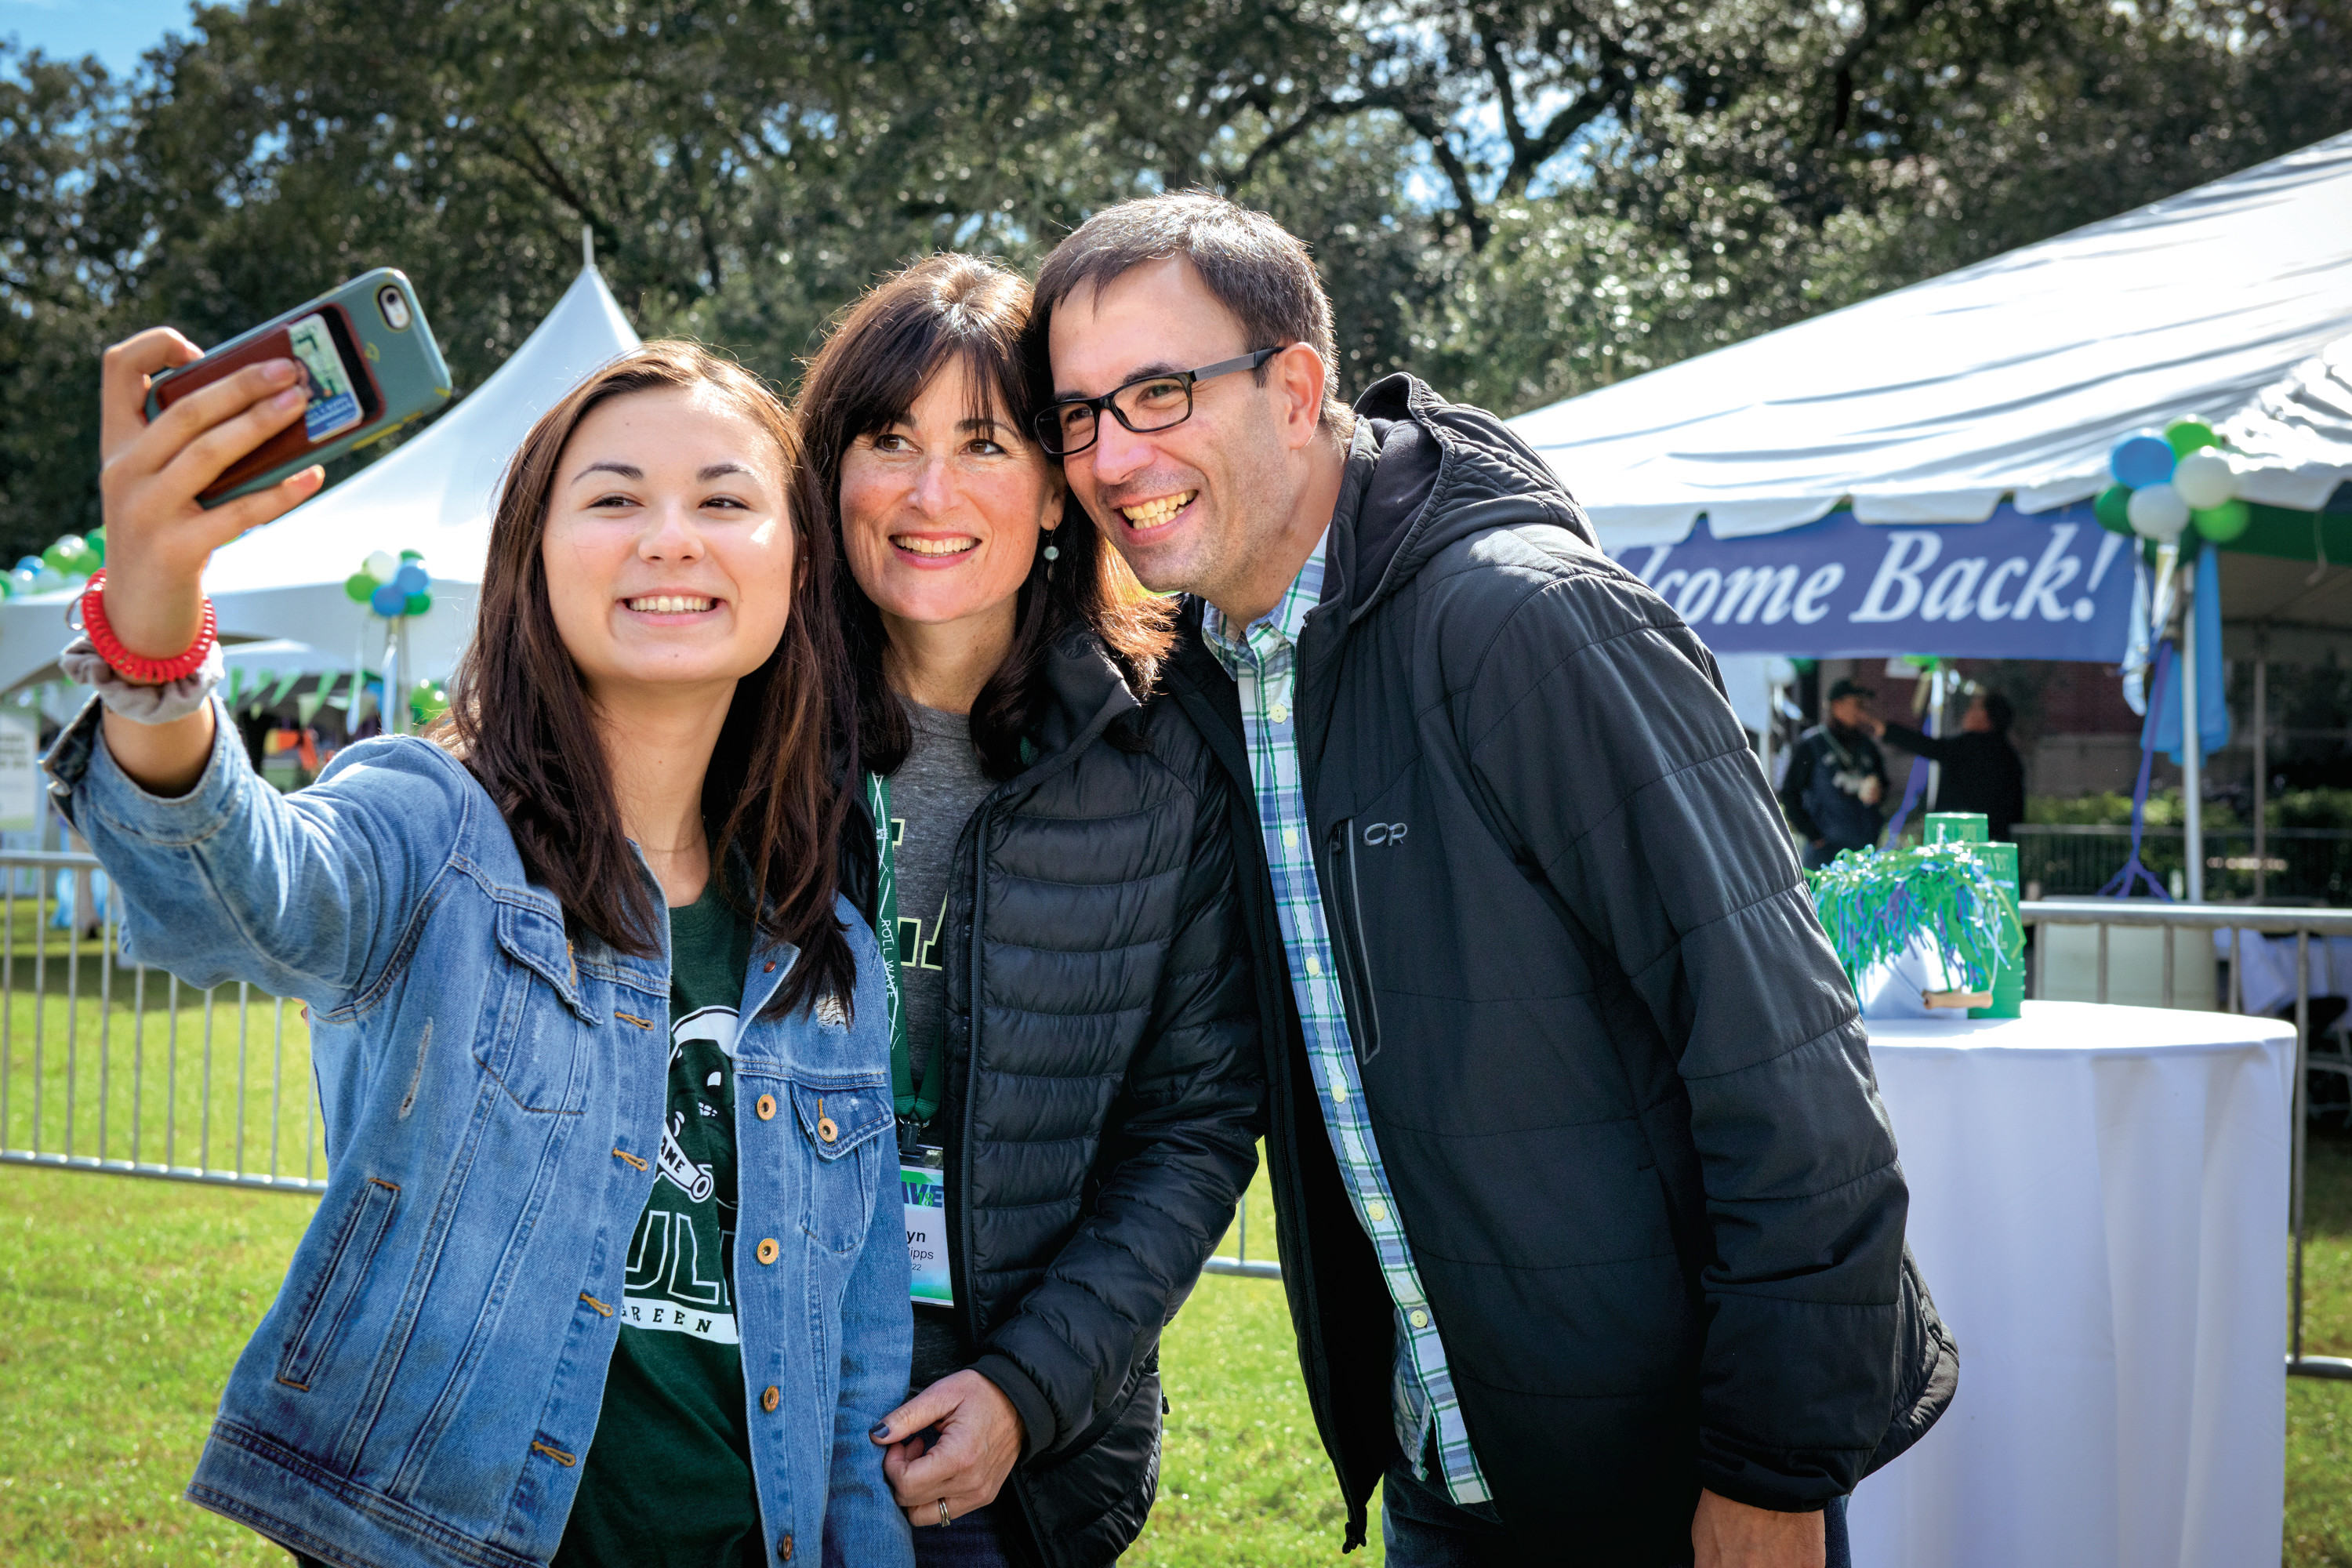 Family at Homecoming weekend.